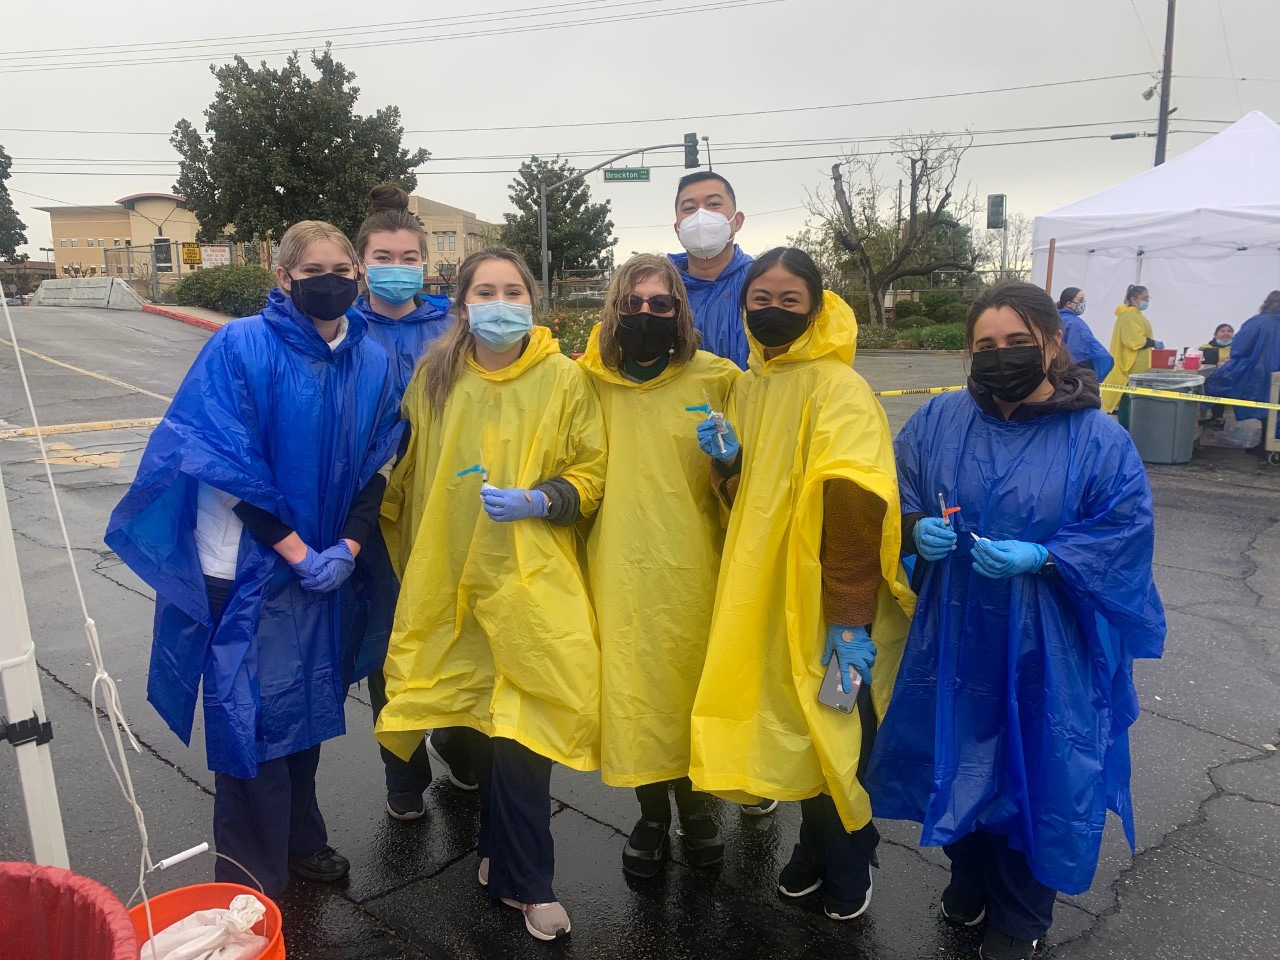 Nursing students from California Baptist University are assisting at COVID-19 vaccination clinics, helping to administer the injections.